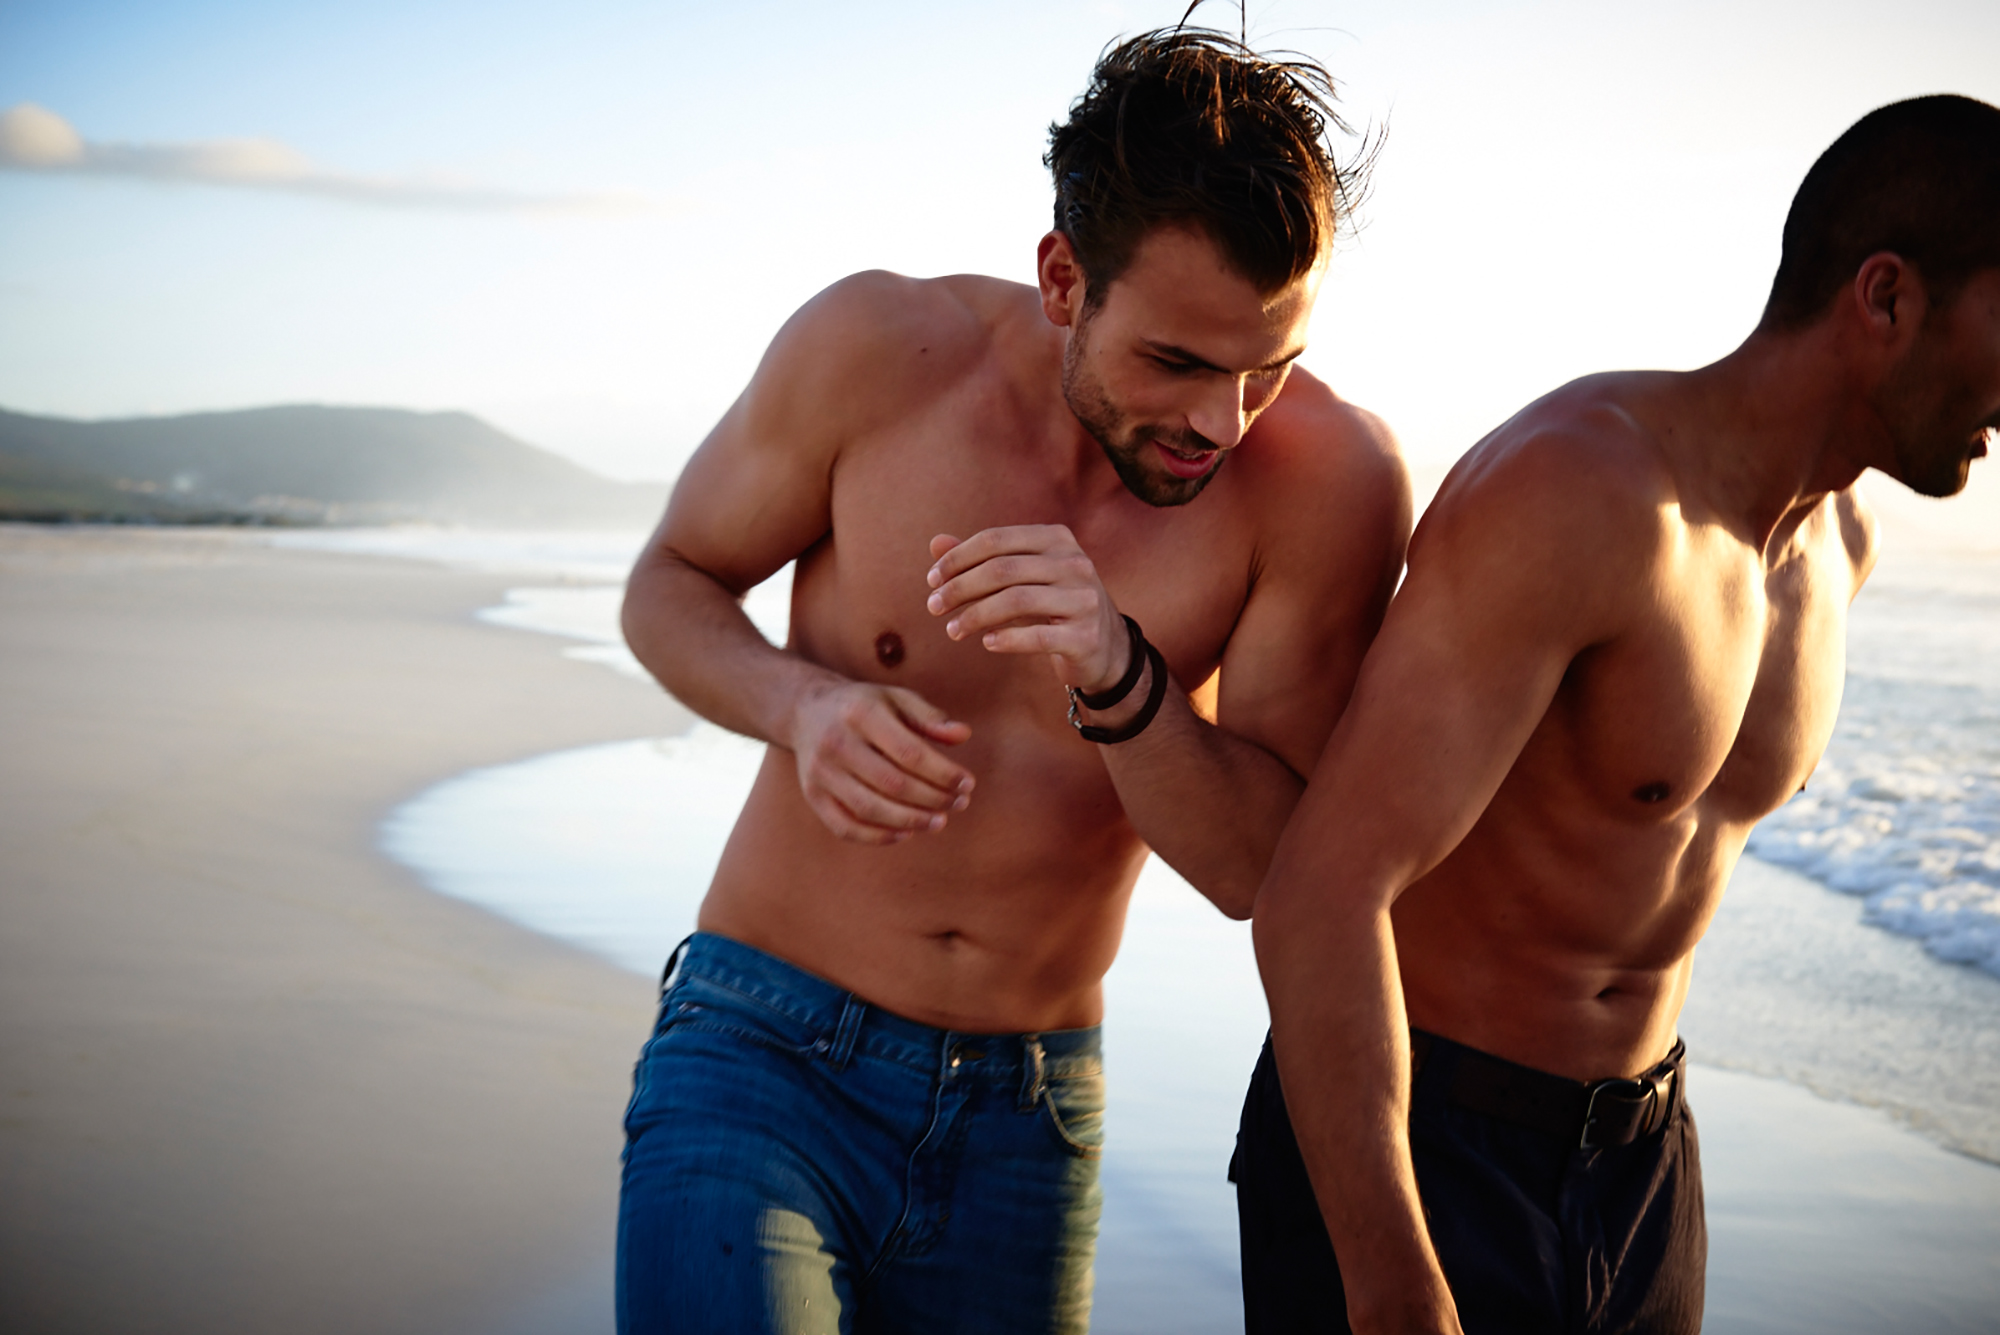 male models beach fun jeans